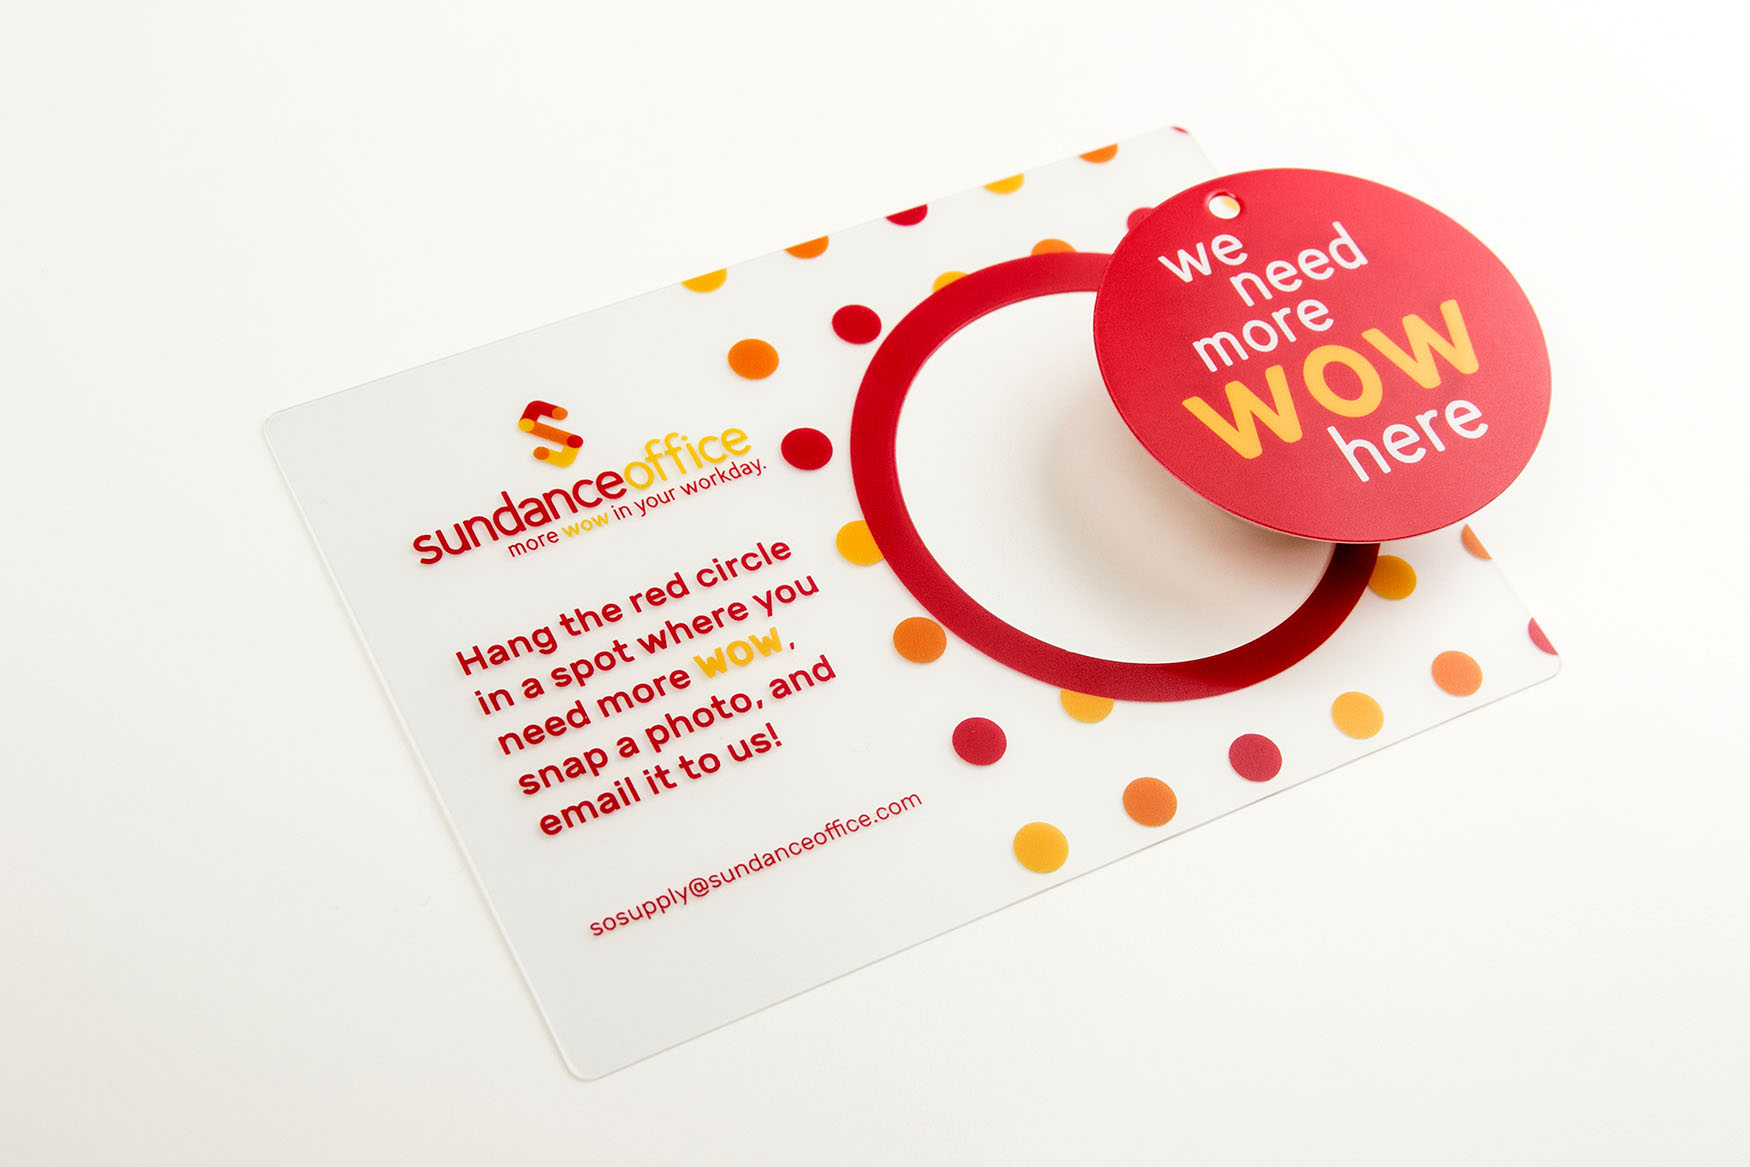 Circle Business Cards Are a Unique Way to Market Your Business ...